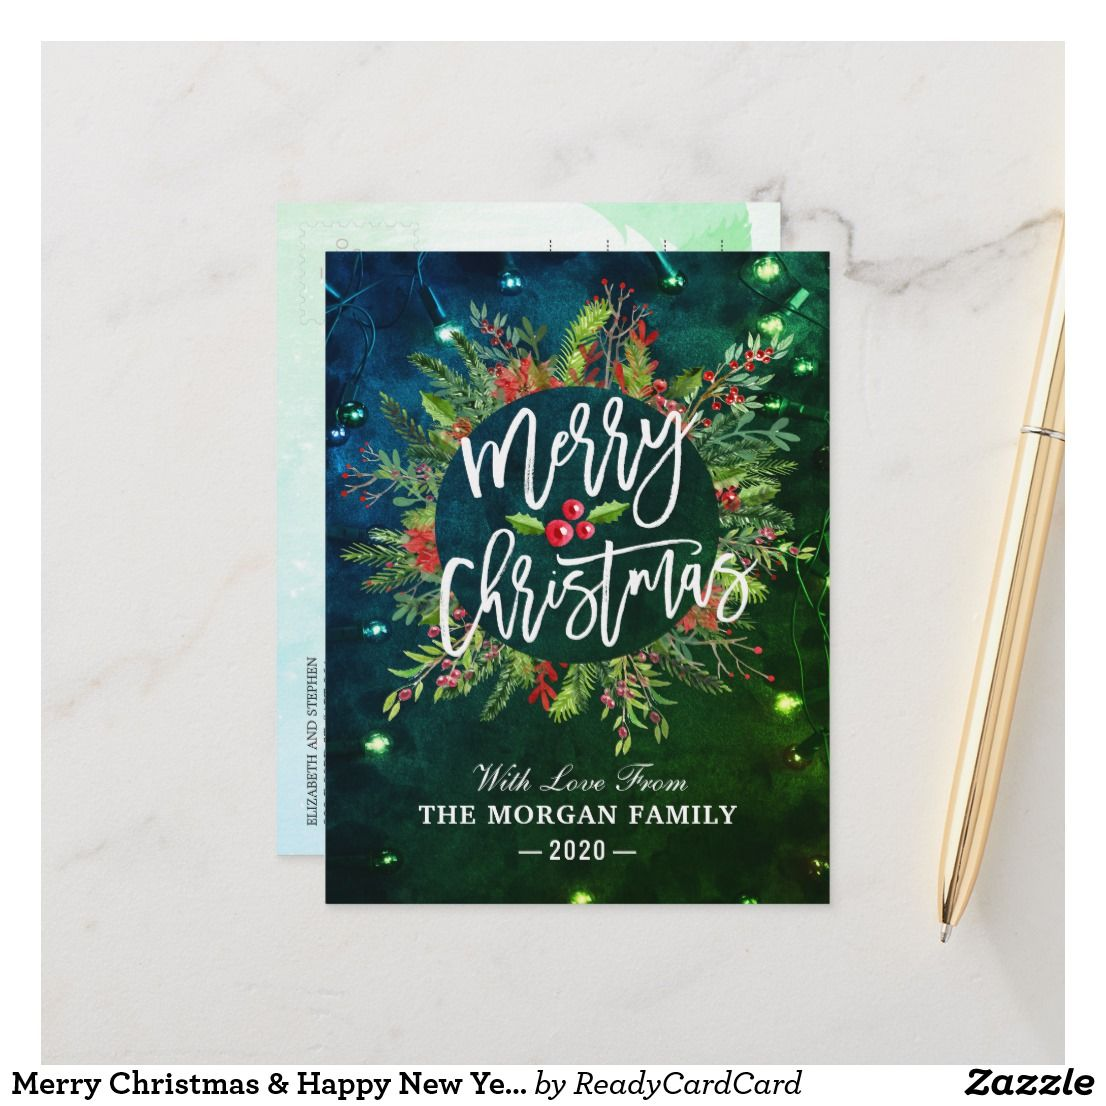 Best Christmas Cookies 2020 Merry Christmas & Happy New Year Wish Holly Wreath Holiday